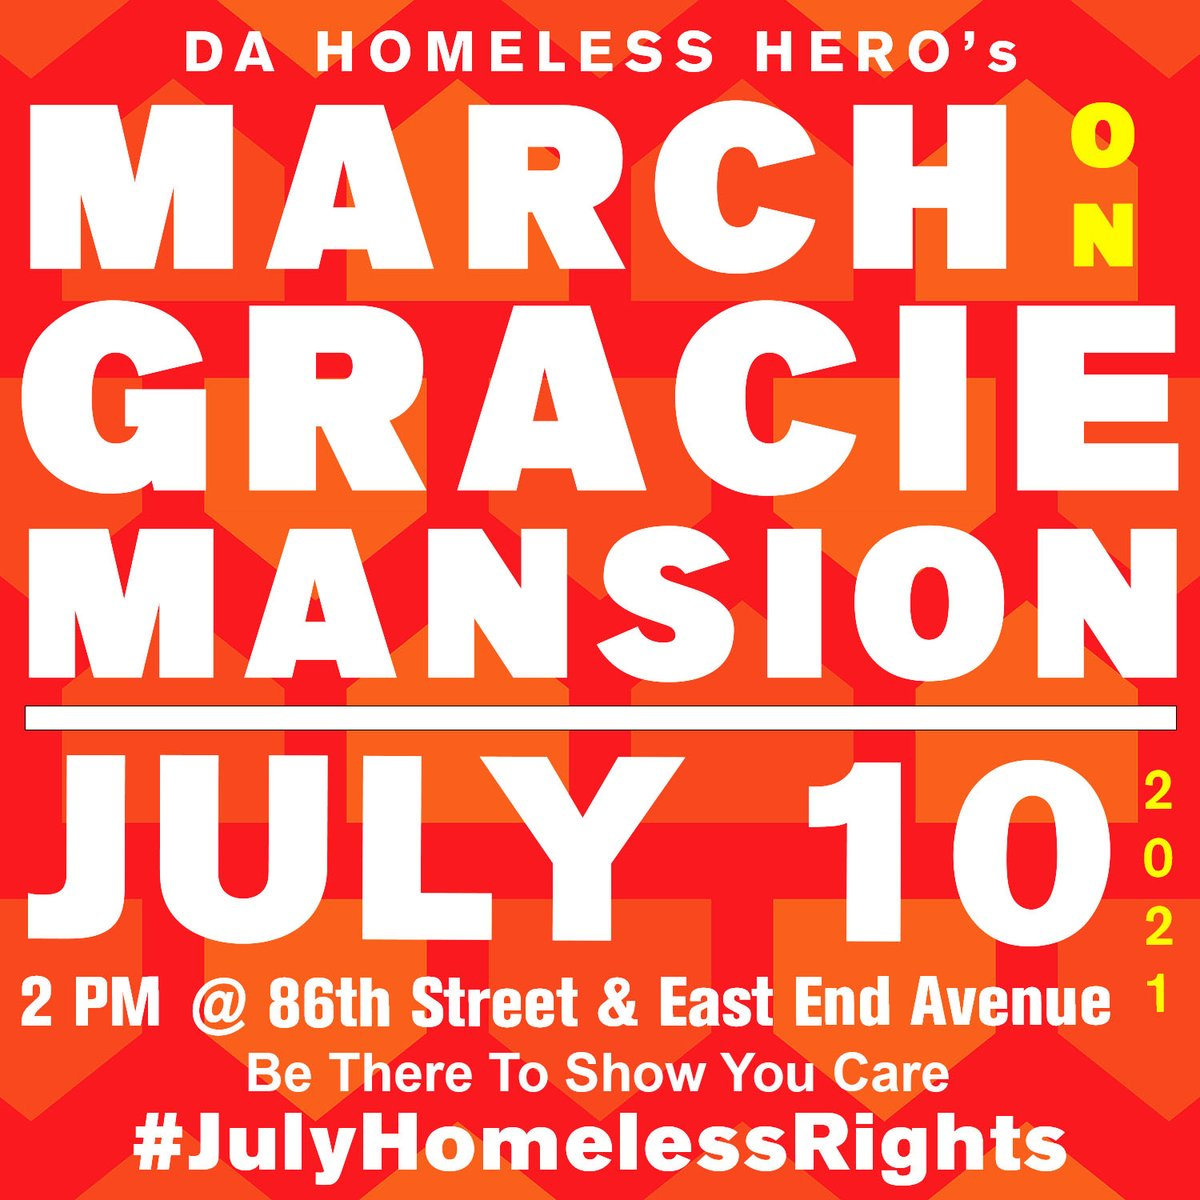 Incredible activists will be joining us to march on Gracie Mansion and declare that Homeless Rights are Civil Rights. Speakers: @homeless_hero, @mayawiley, BLM NY founder @IamHawkNewsome, DA nom @AlvinBraggNYC, CC noms @crystalrhudson @Kristin4Harlem, Elder @KirstenJohnFoy +more! https://t.co/QkP2cX3WQ1